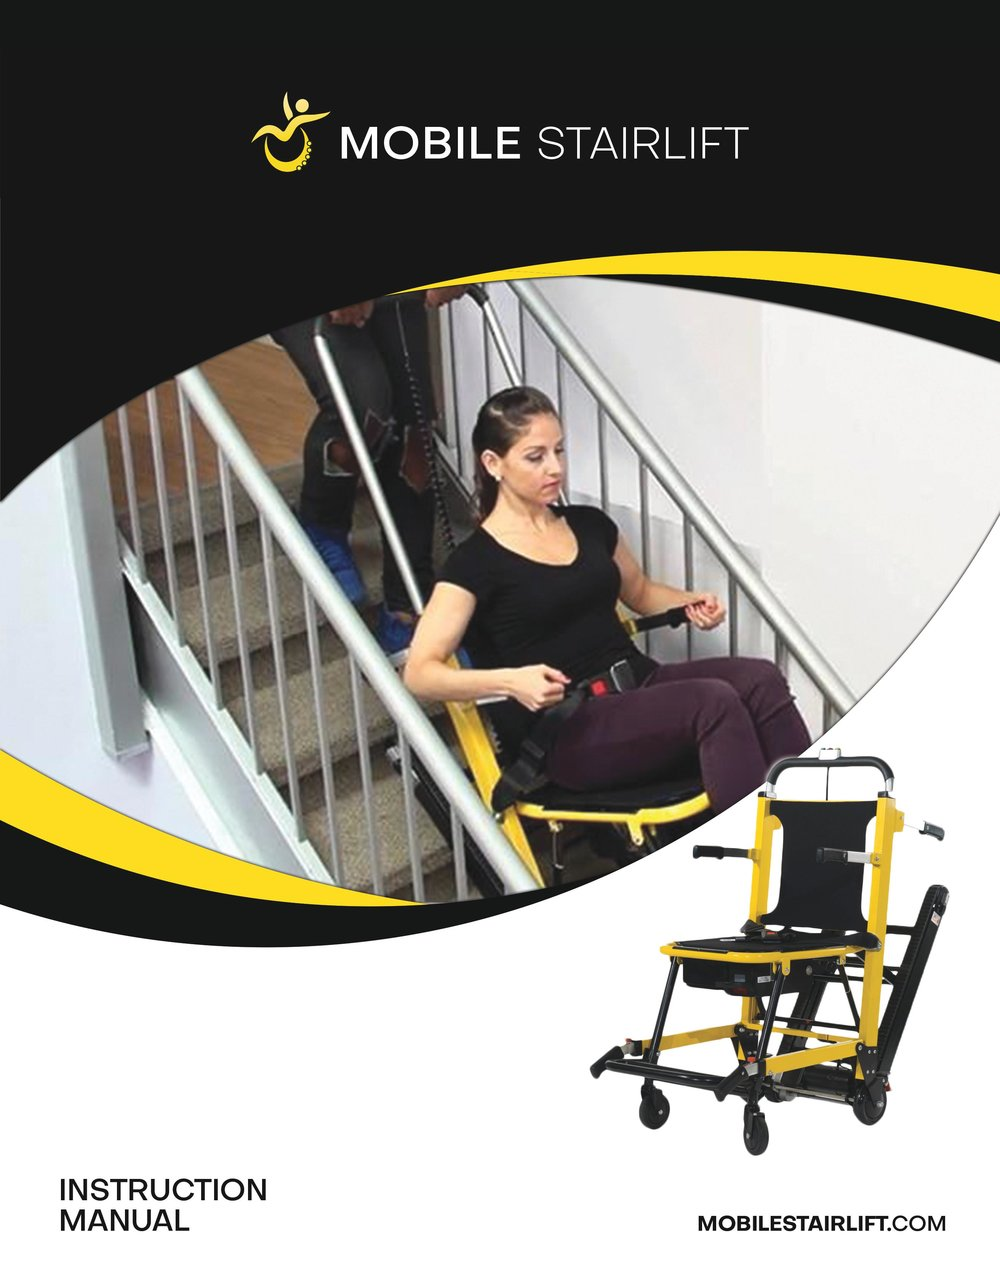 Mobile Stairlift Instruction Manual-1.jpg